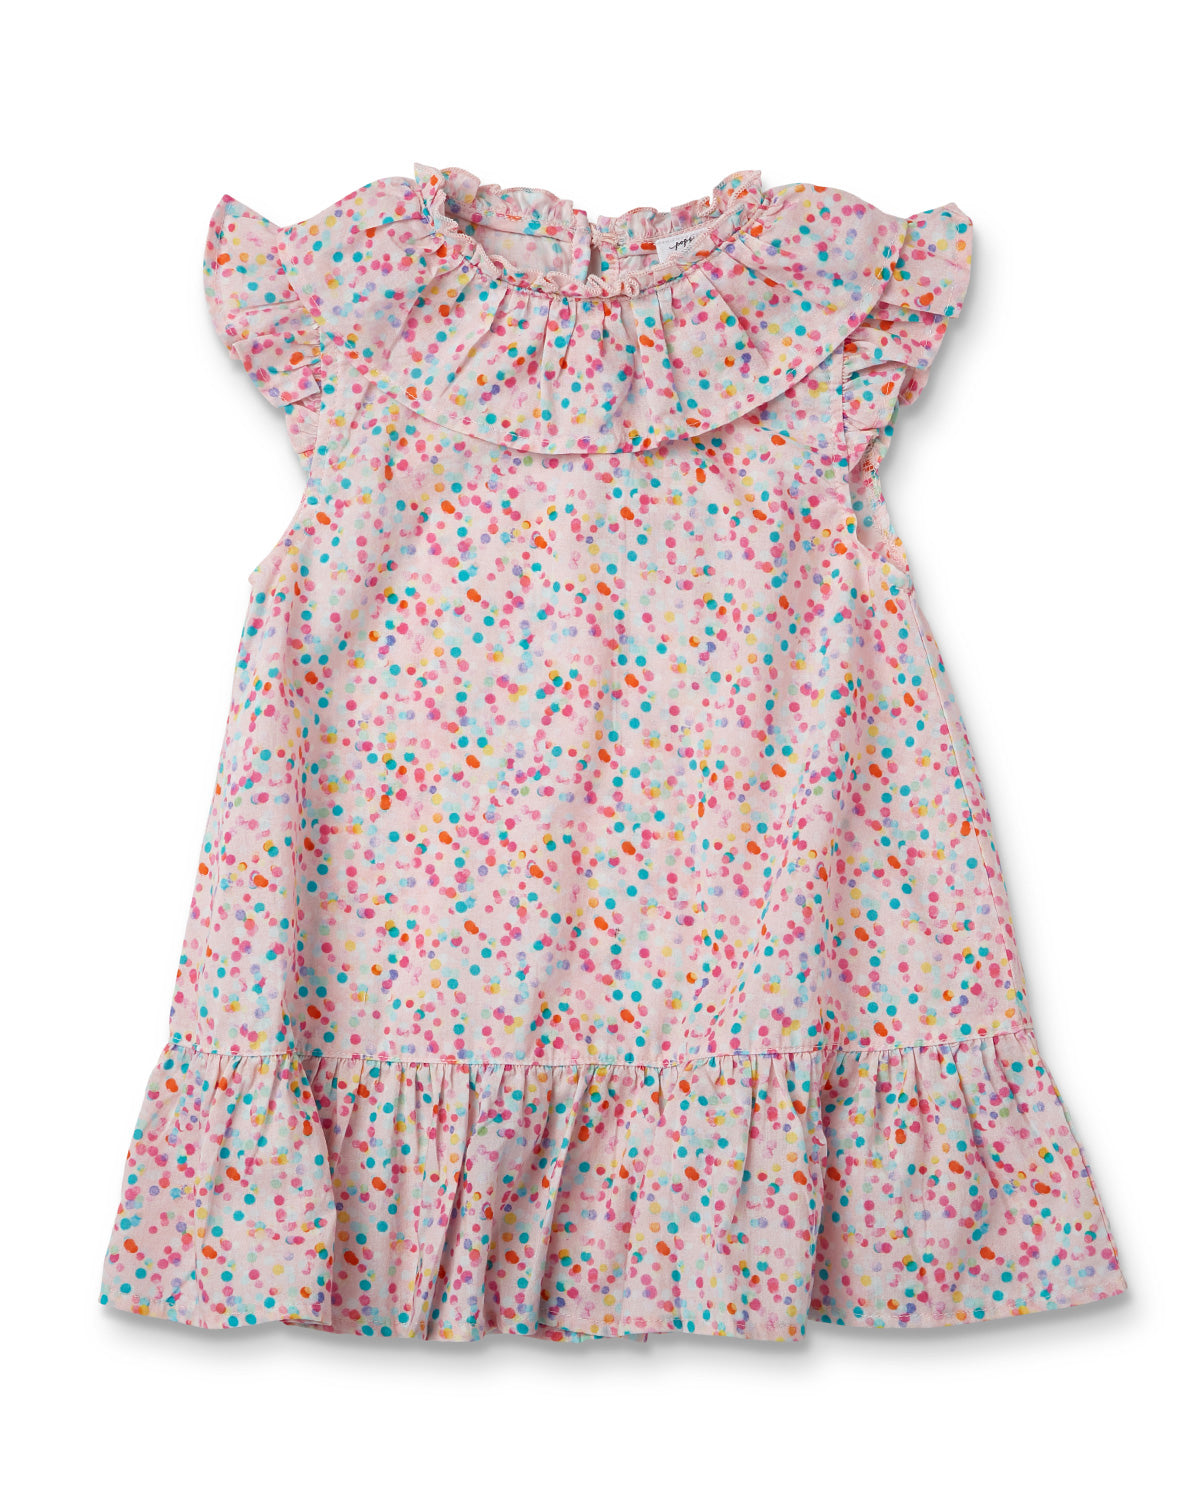 Poppies Flossey Frill Dress - Confetti